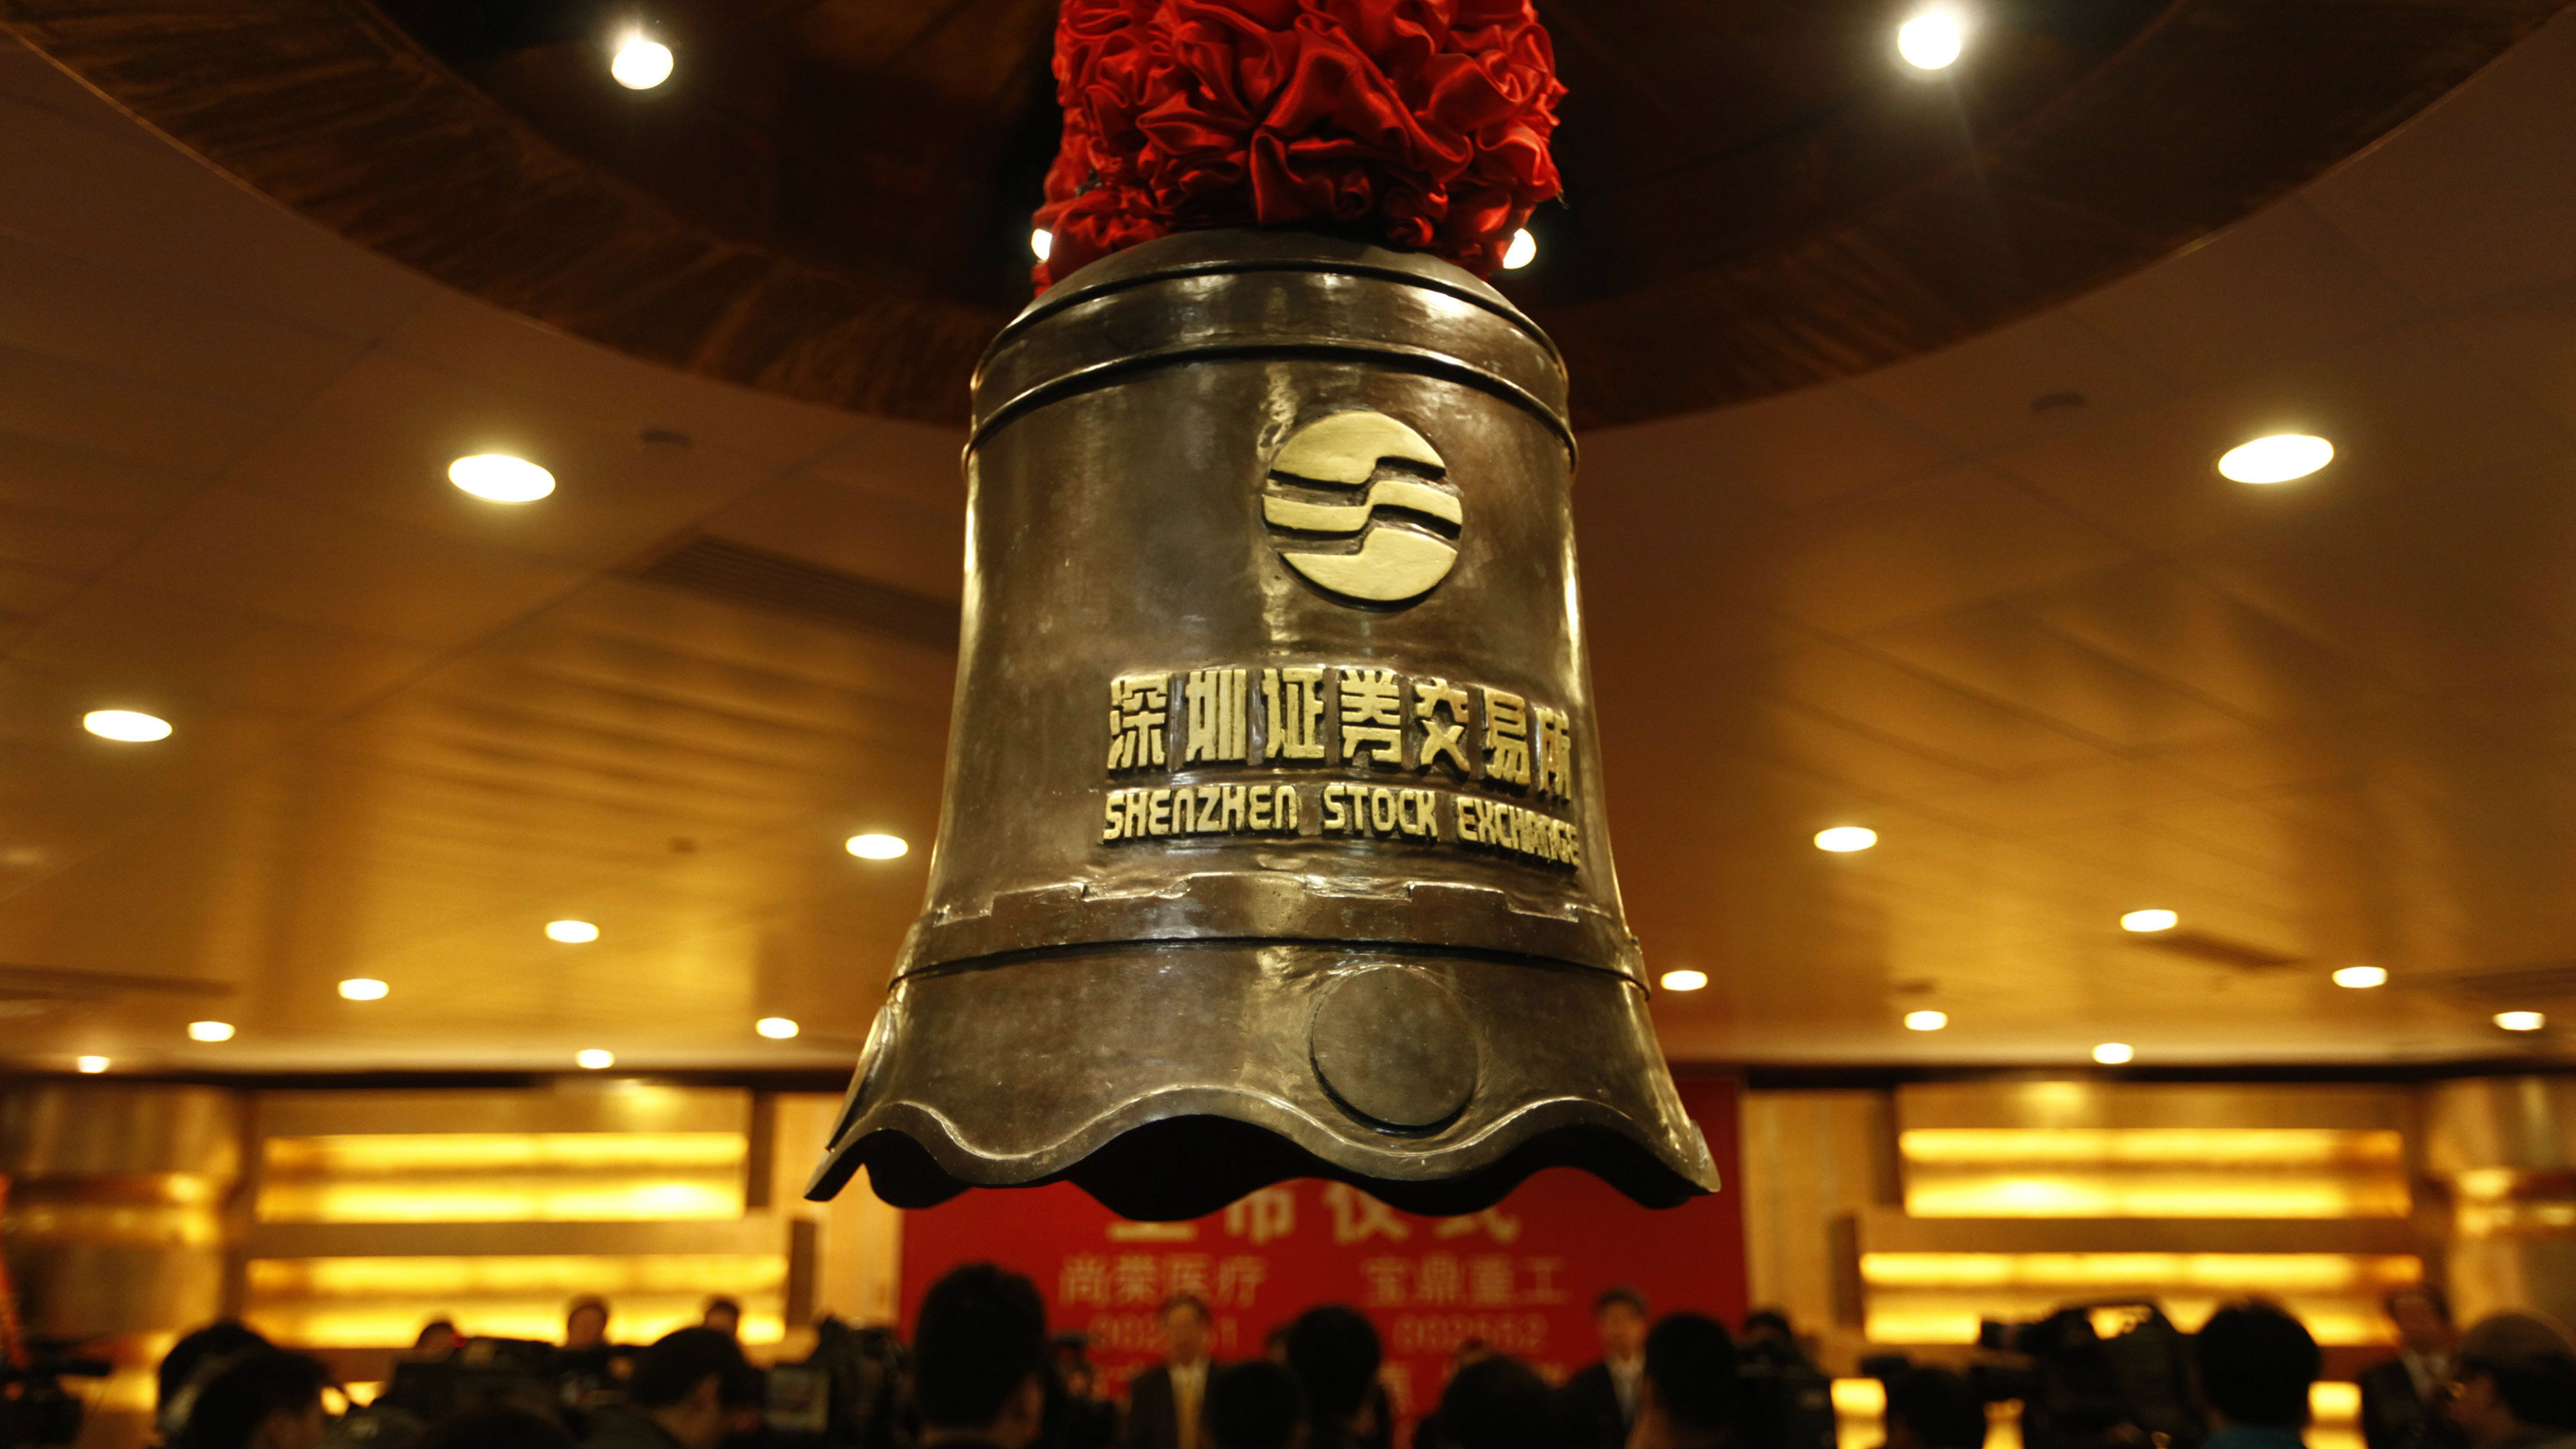 A bell at the Shenzhen Stock Exchange, where Beijing Baofeng Technology is listed.